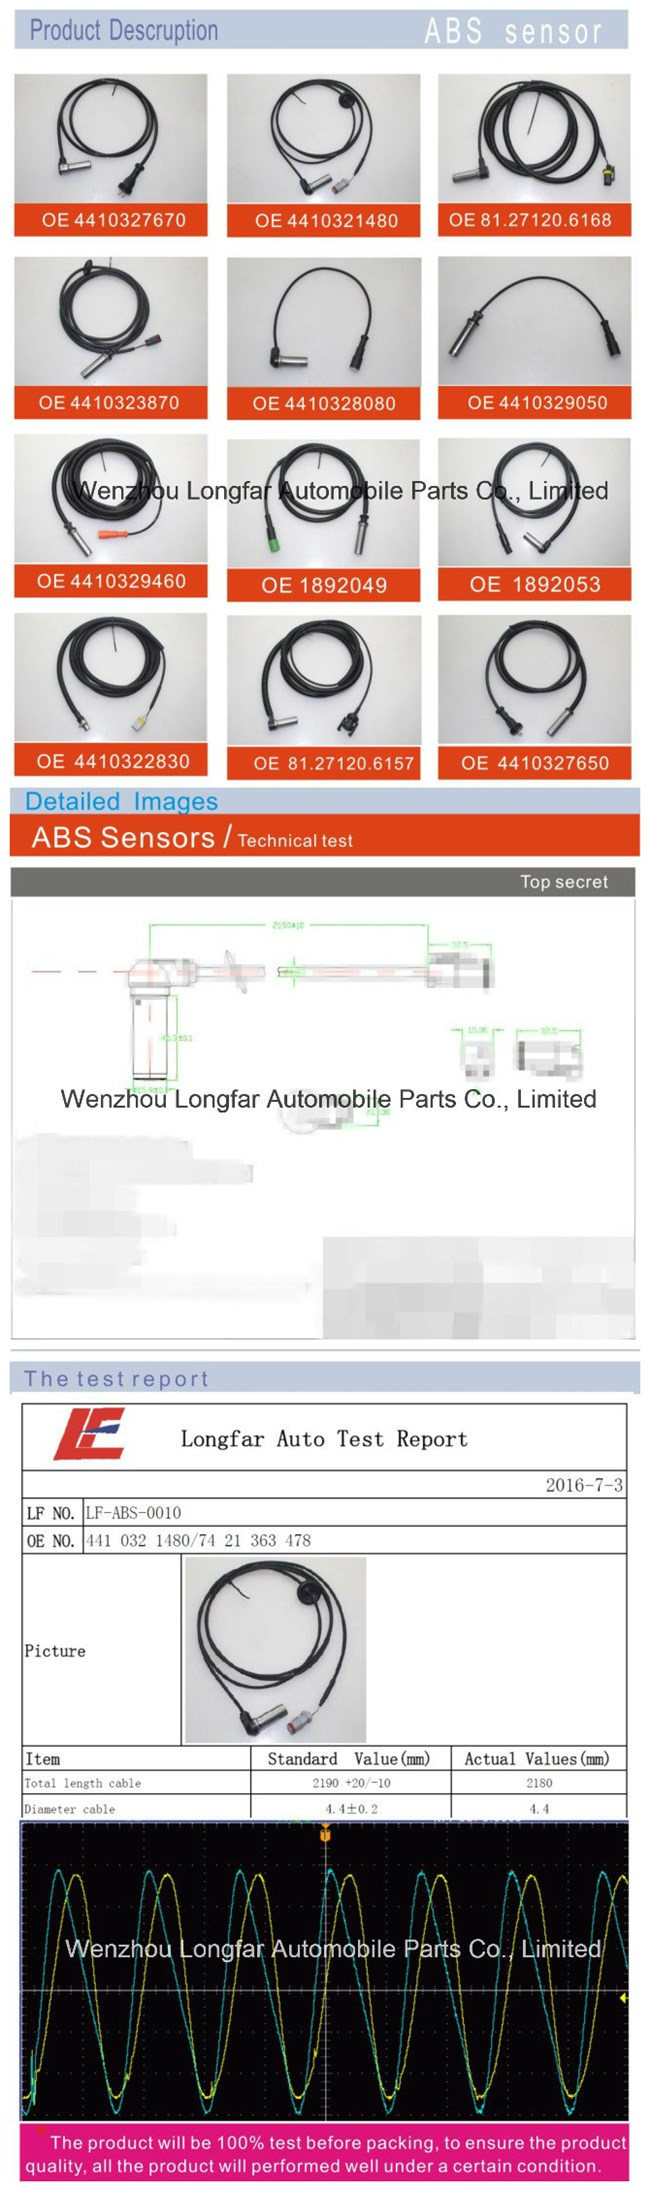 Auto Truck Sensor 0085451728 Plug Automotive Sensor Connection Cable Vehicle Sensor Indicator Transducer Connecting Cable